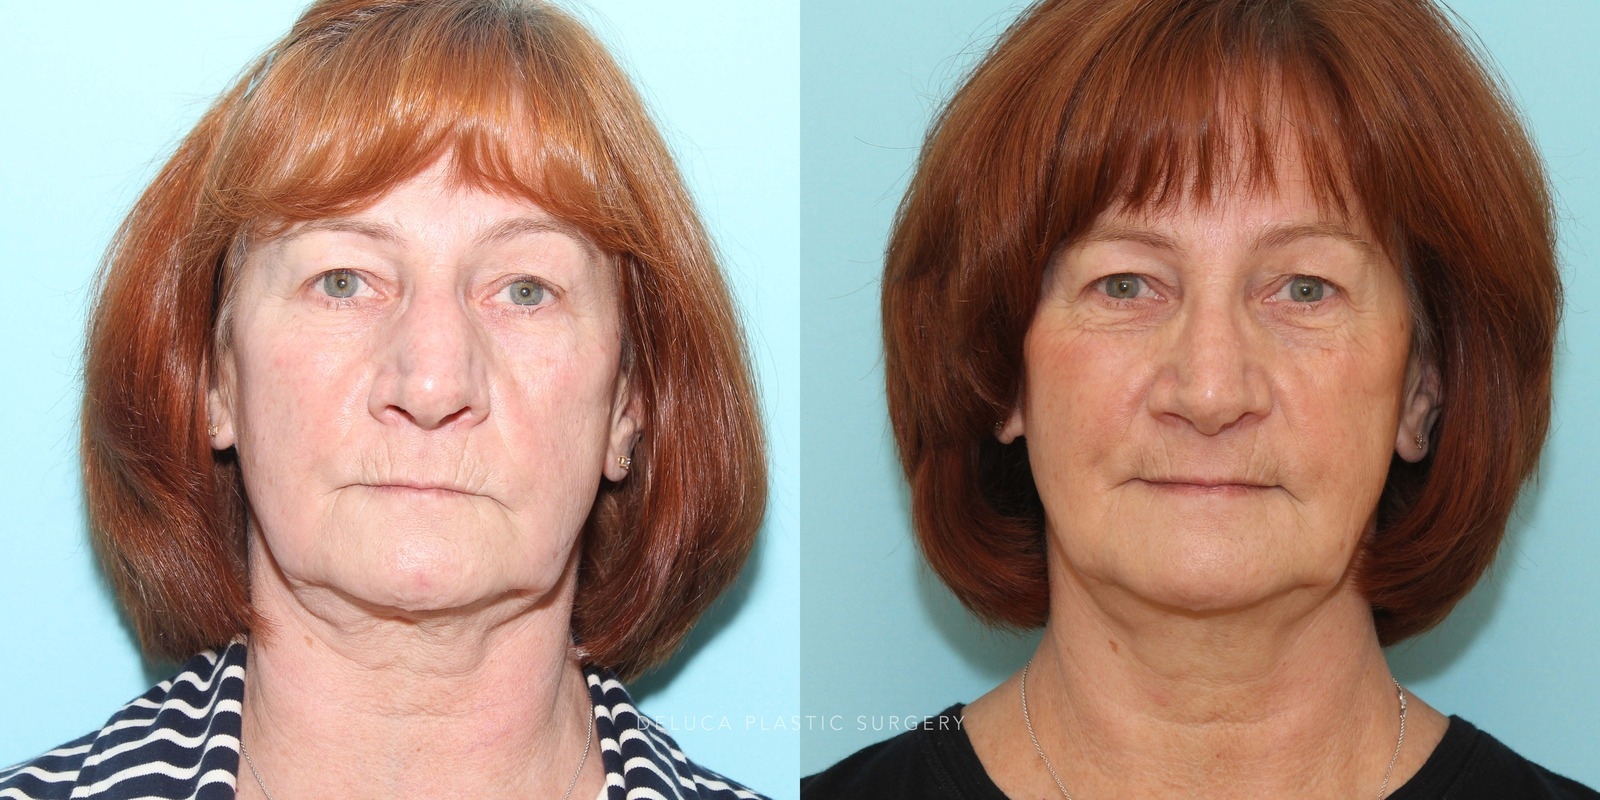 63 year old Septoplasty and Cosmetic Rhinoplasty